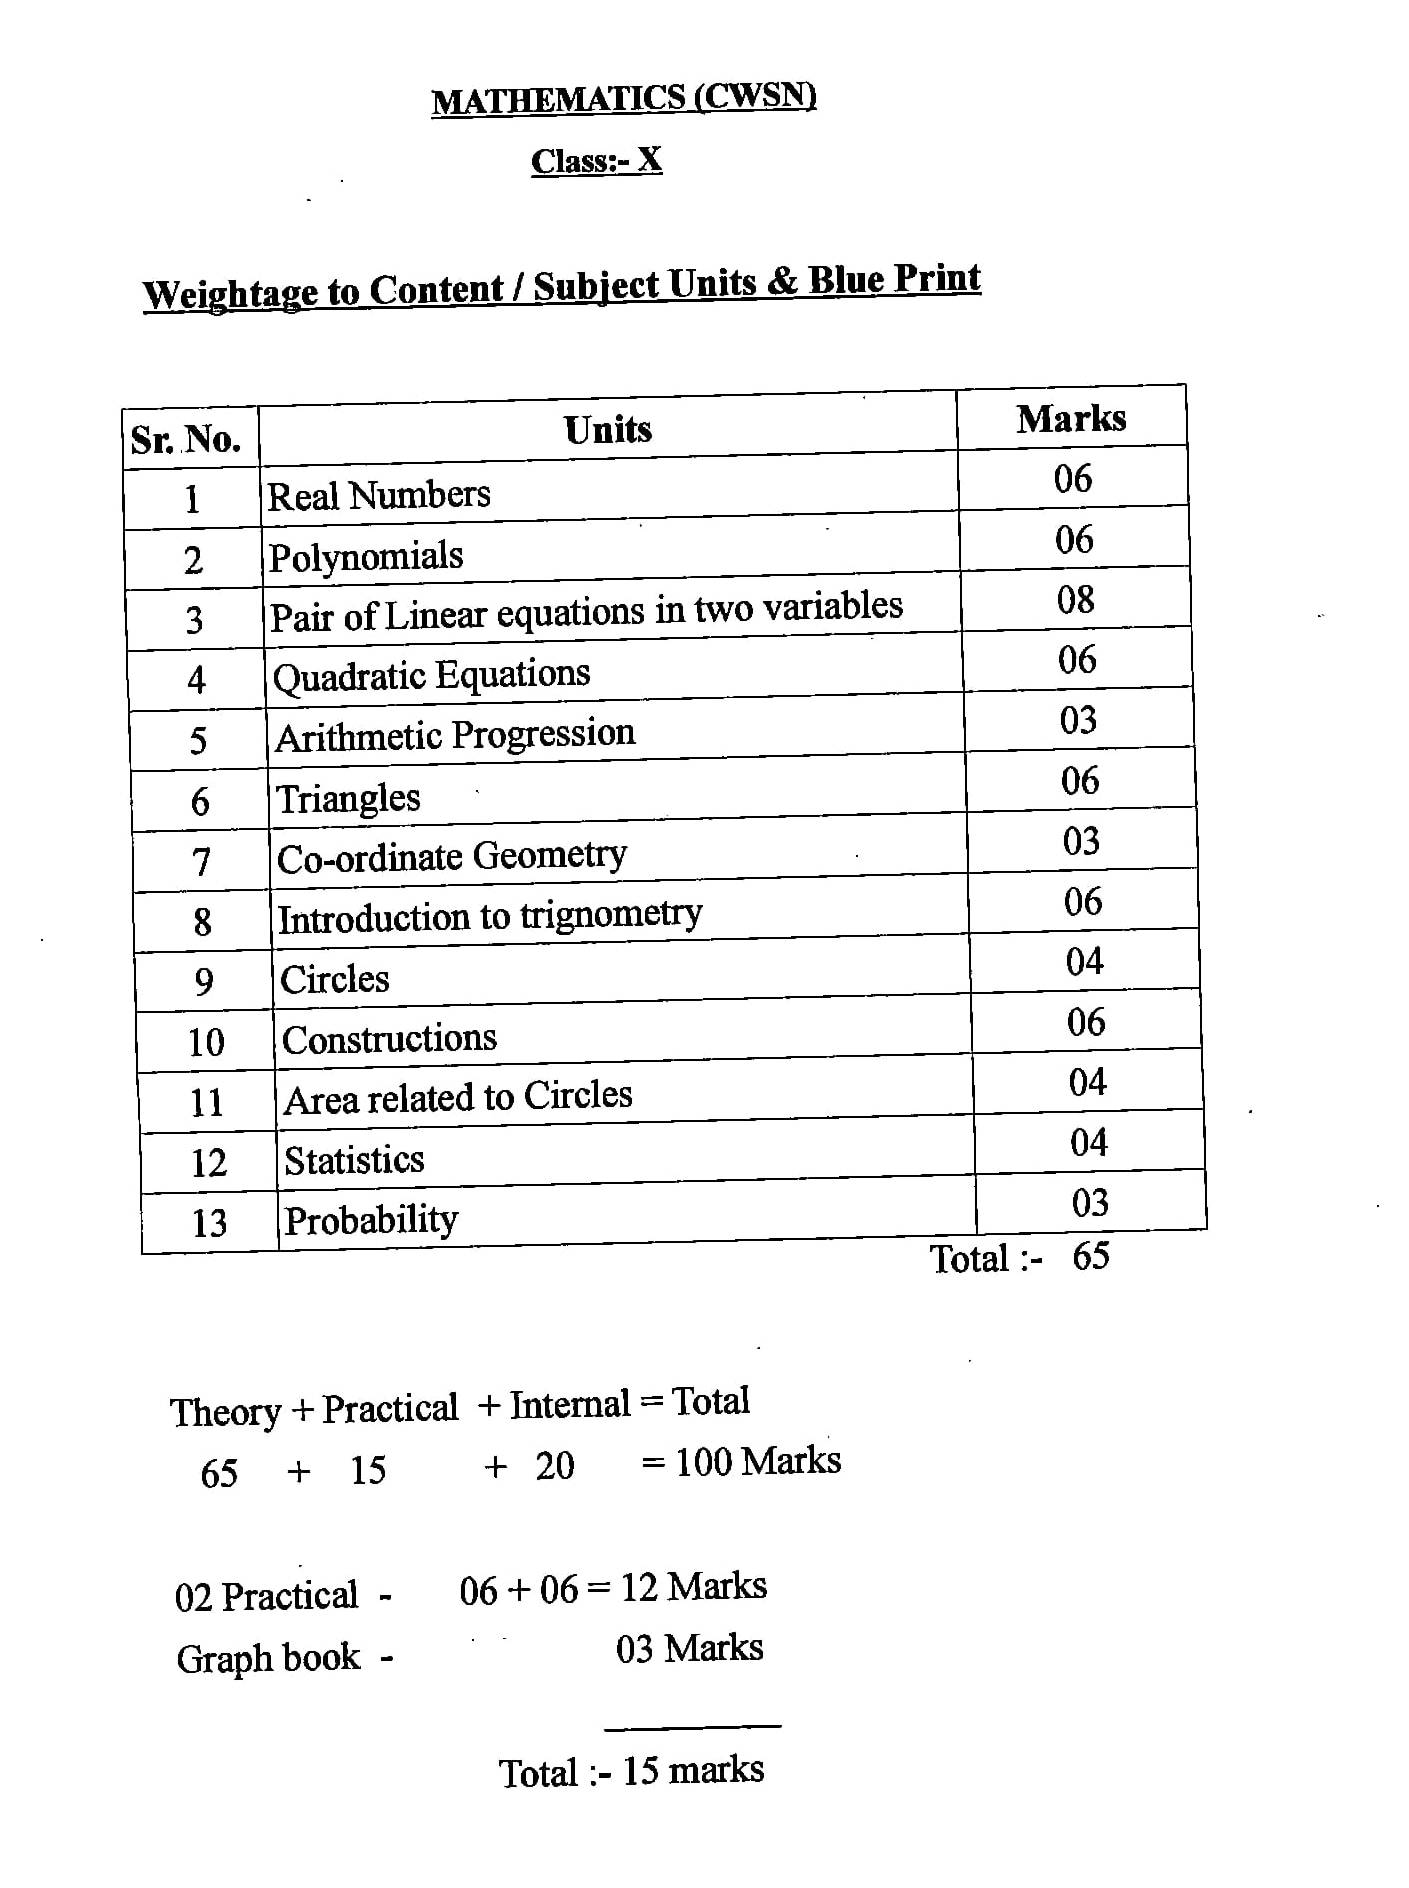 Goa SSC Mathematics Syllabus 2020-21